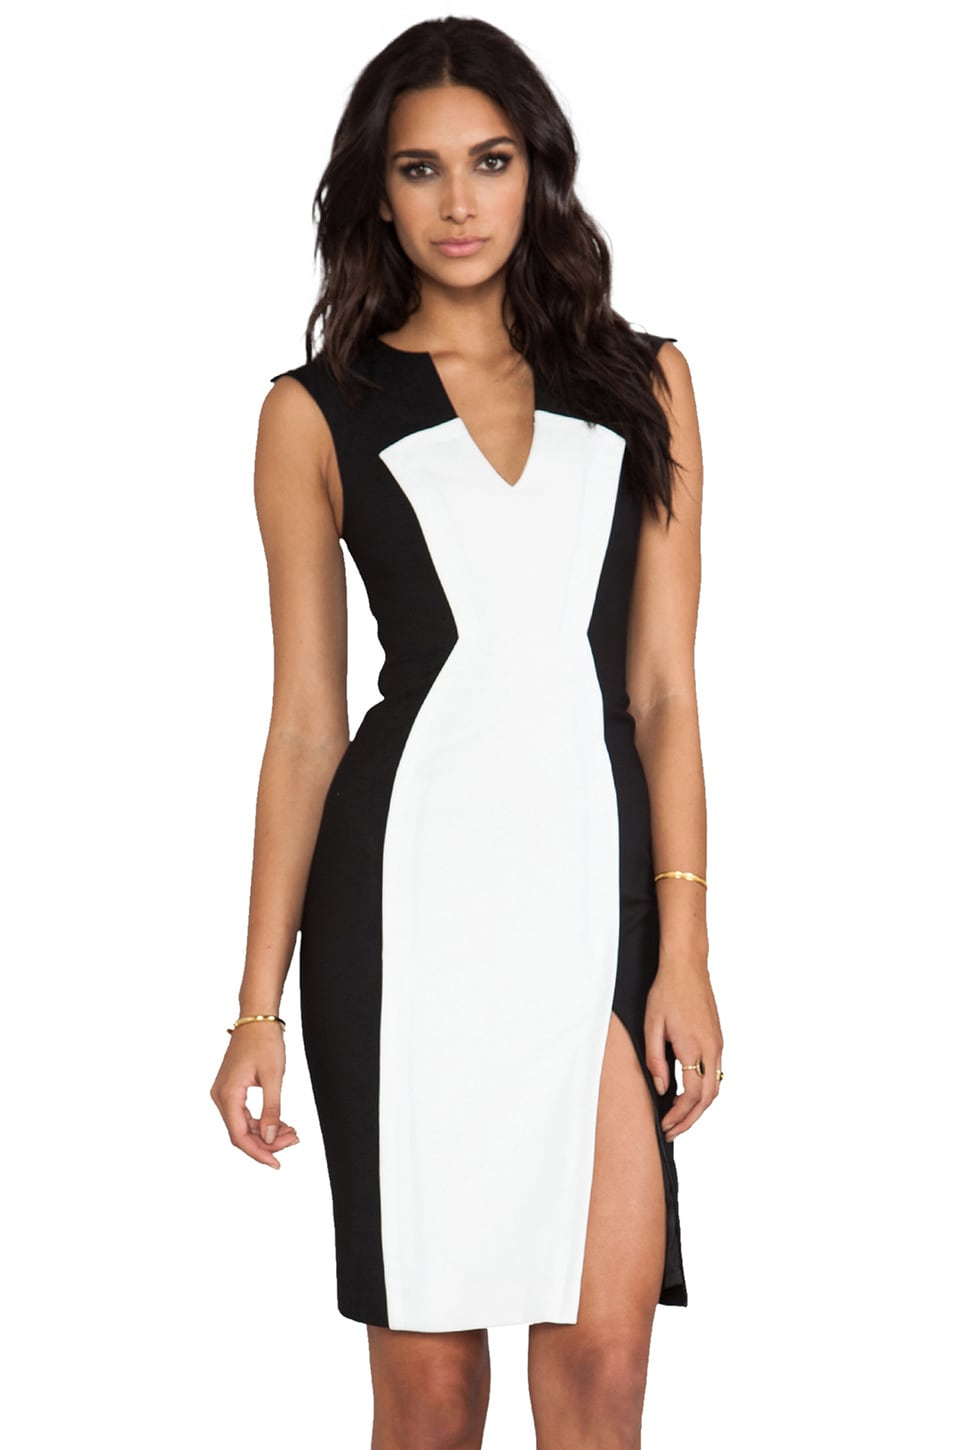 Black Halo Heston Colorblocked Dress in Eggshell/Black